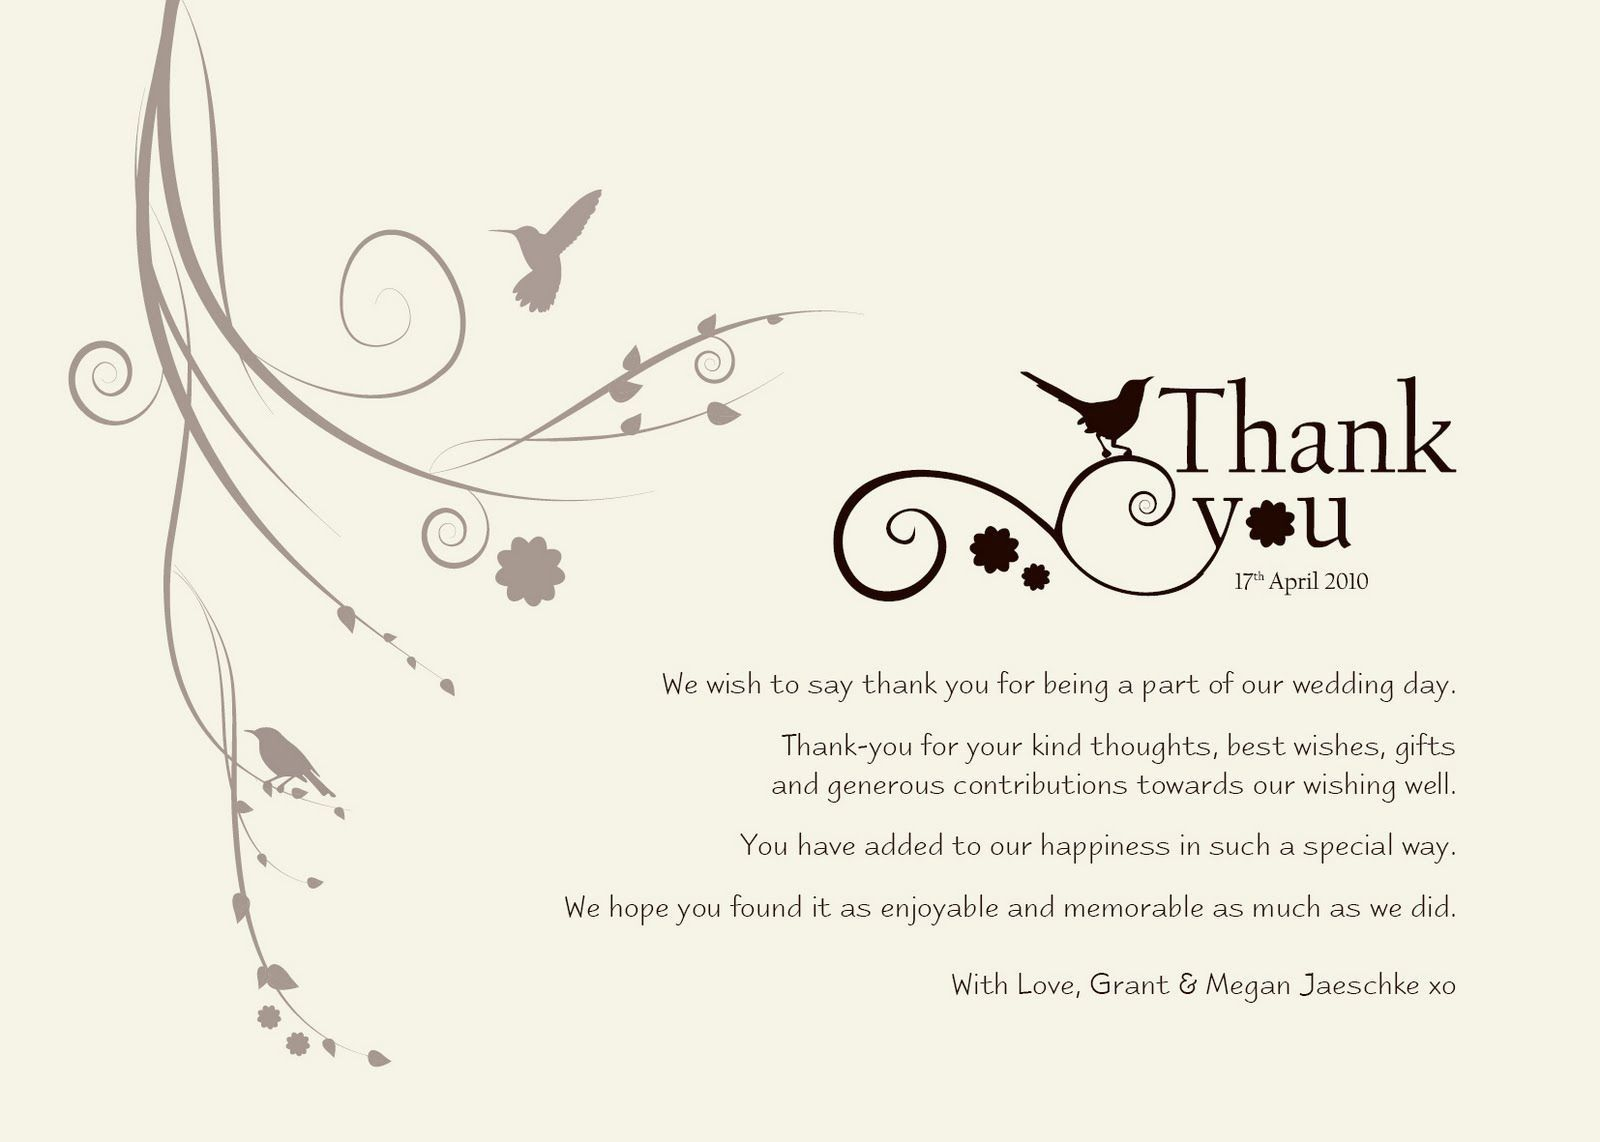 004 Exceptional Wedding Thank You Note Template Sample  Money Wording Bridal Shower GiftFull